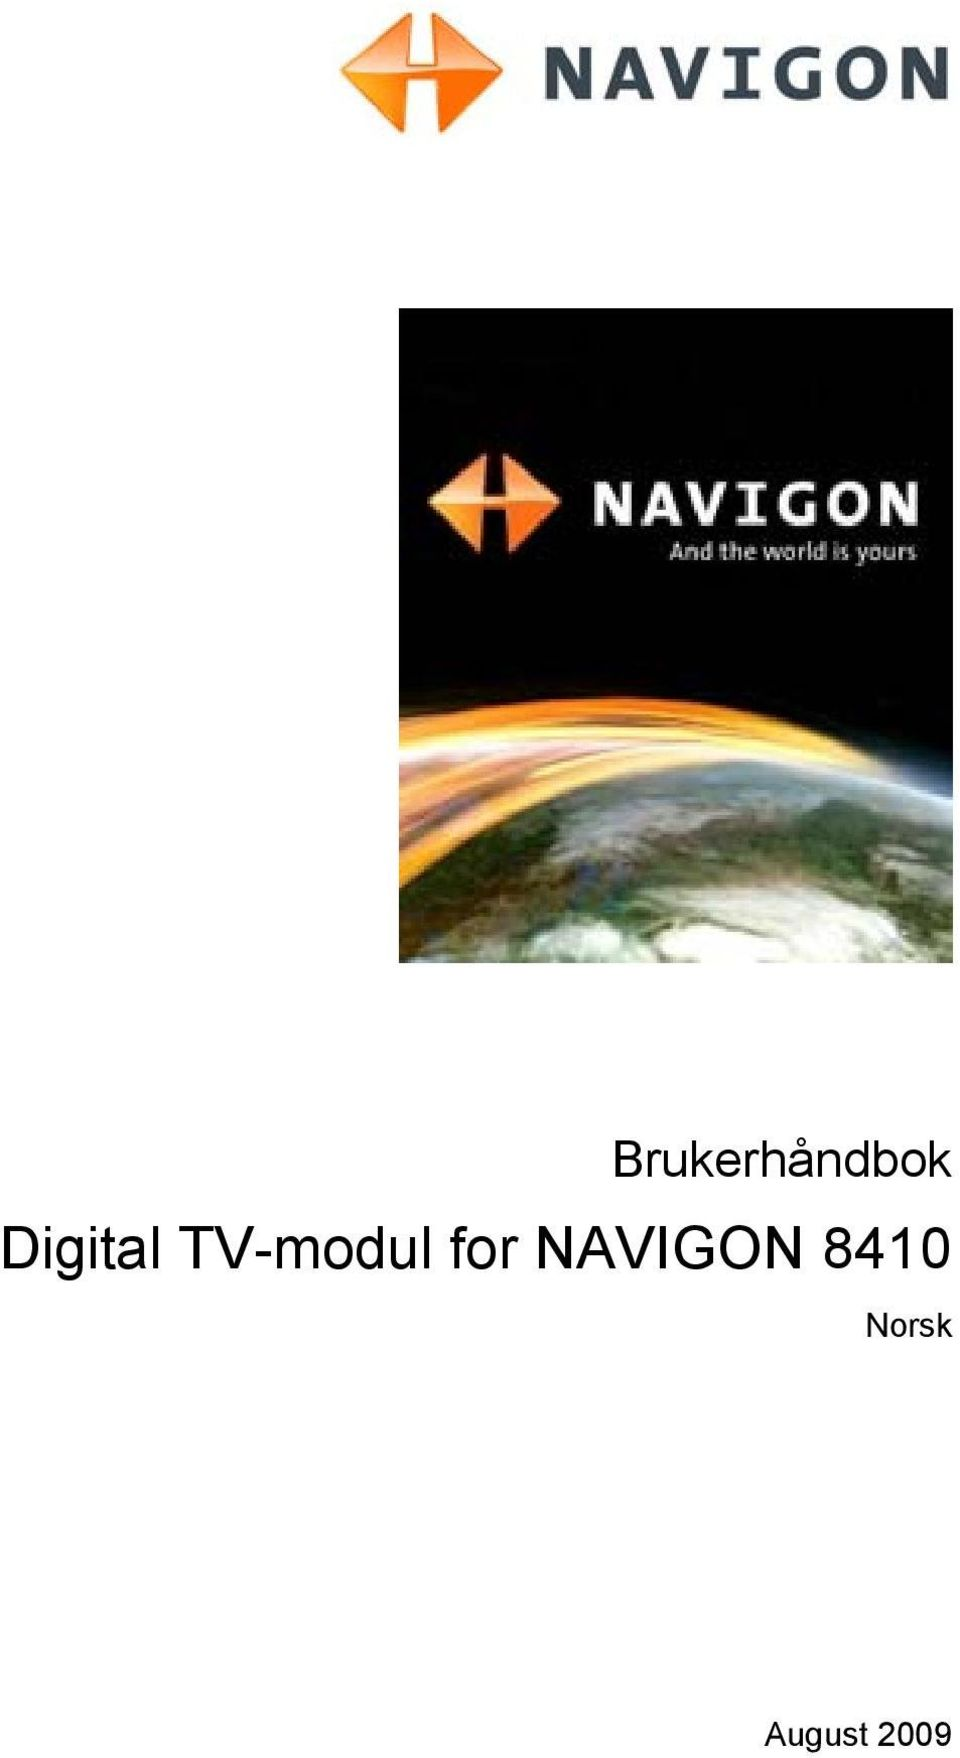 for NAVIGON 8410